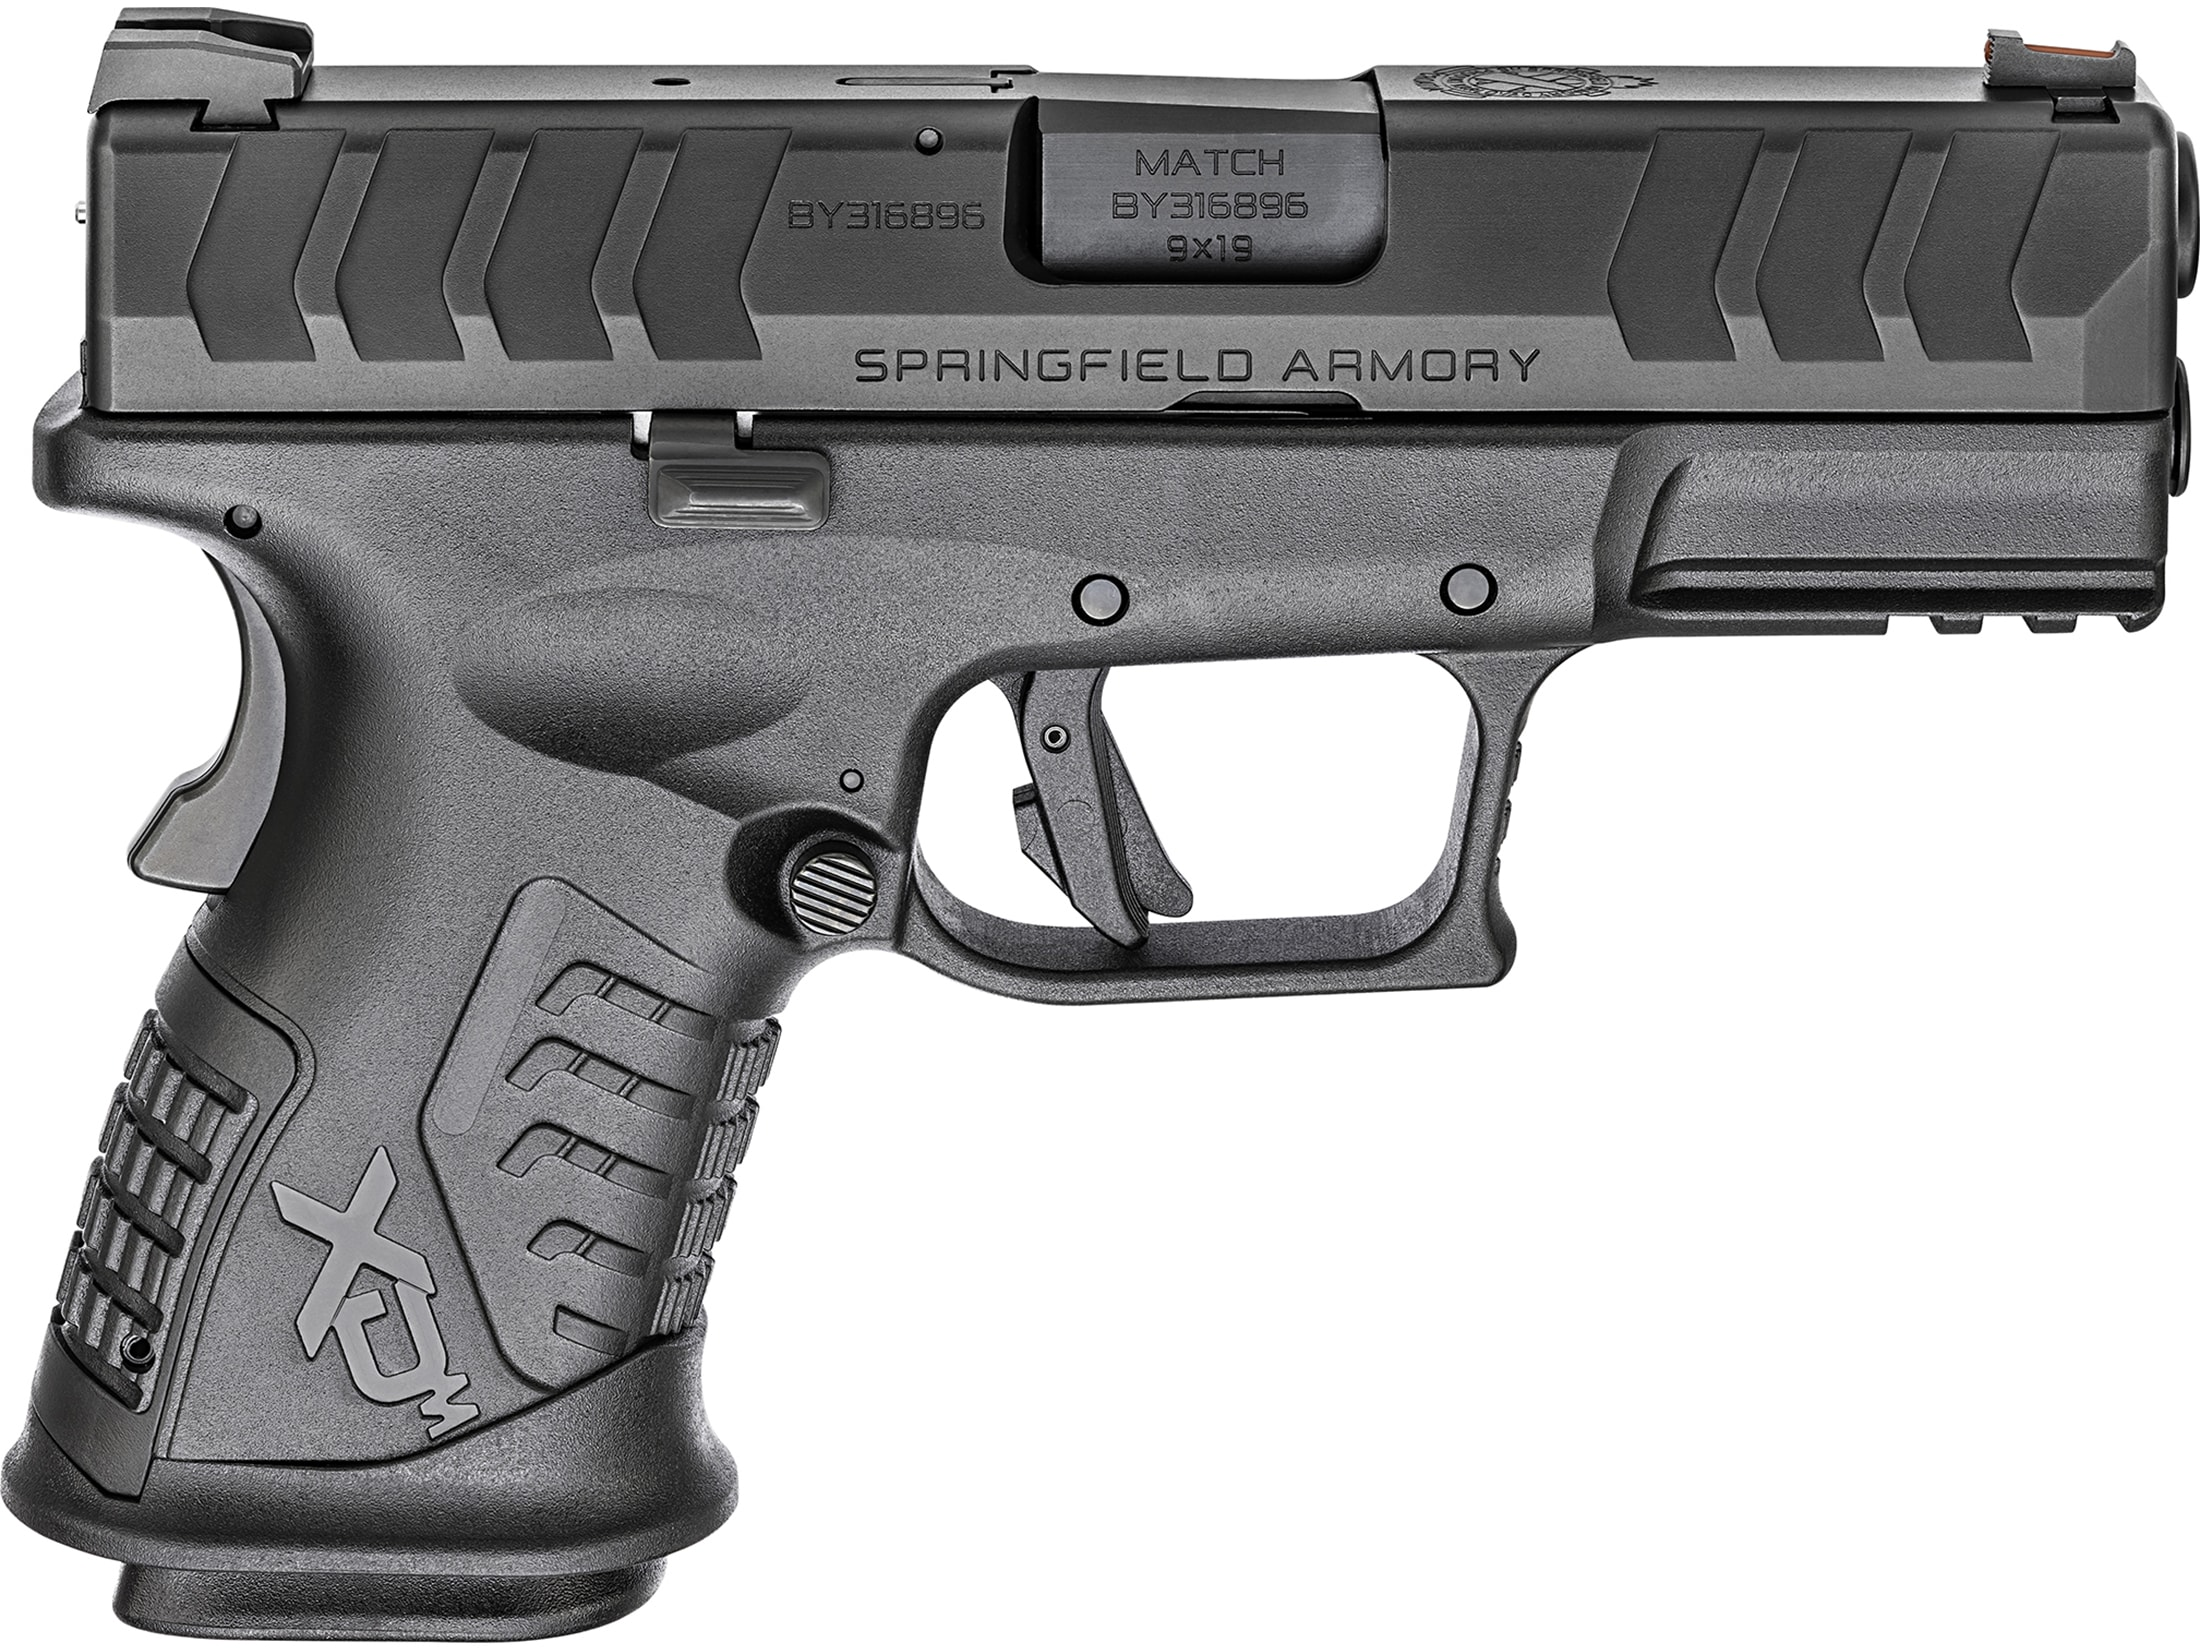 """Image of Springfield Armory XD-M Elite 9mm Luger Semi-Automatic Pistol 3.8"""" Barrel 14-Round"""